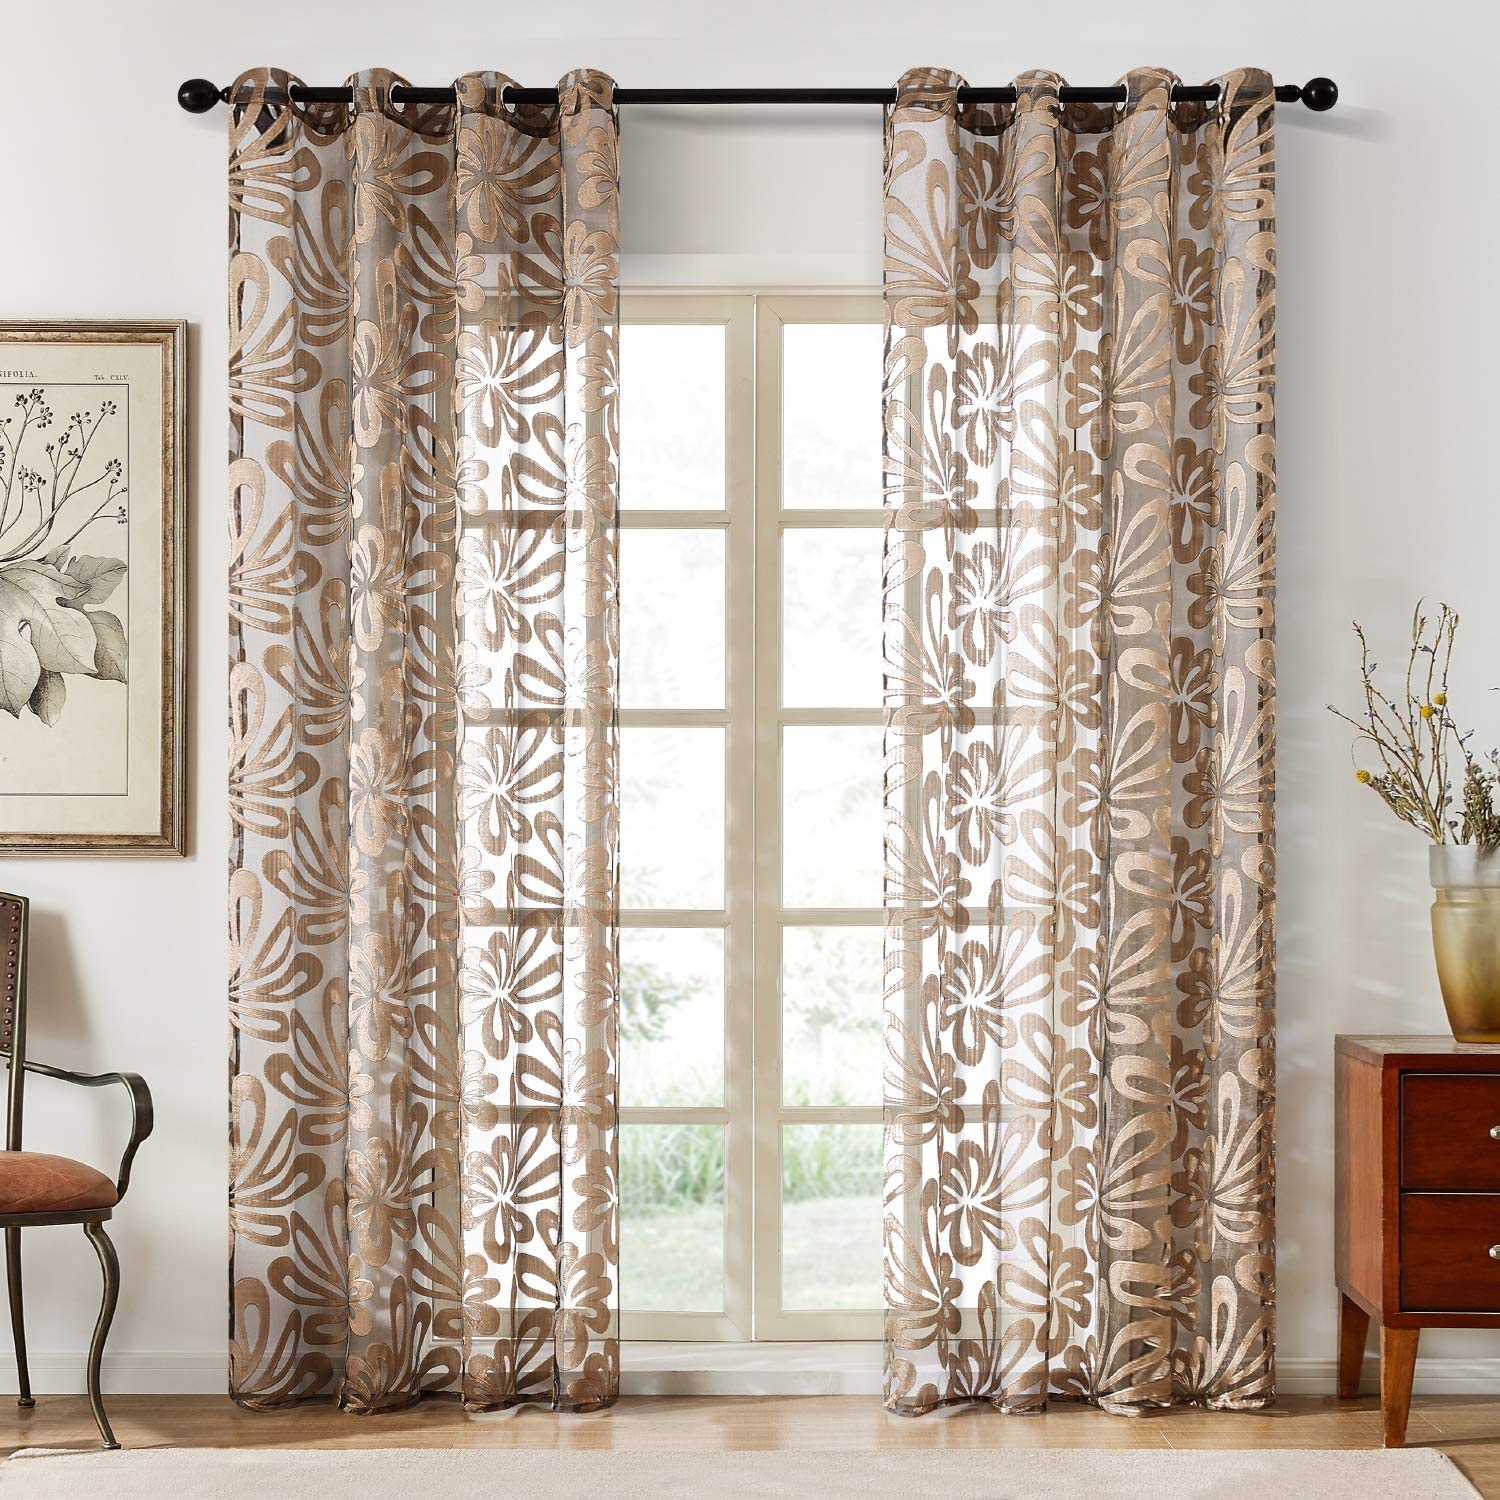 Top Sale Finel Floral Sheer Curtains 96 Inches outlet Room for Living Long B